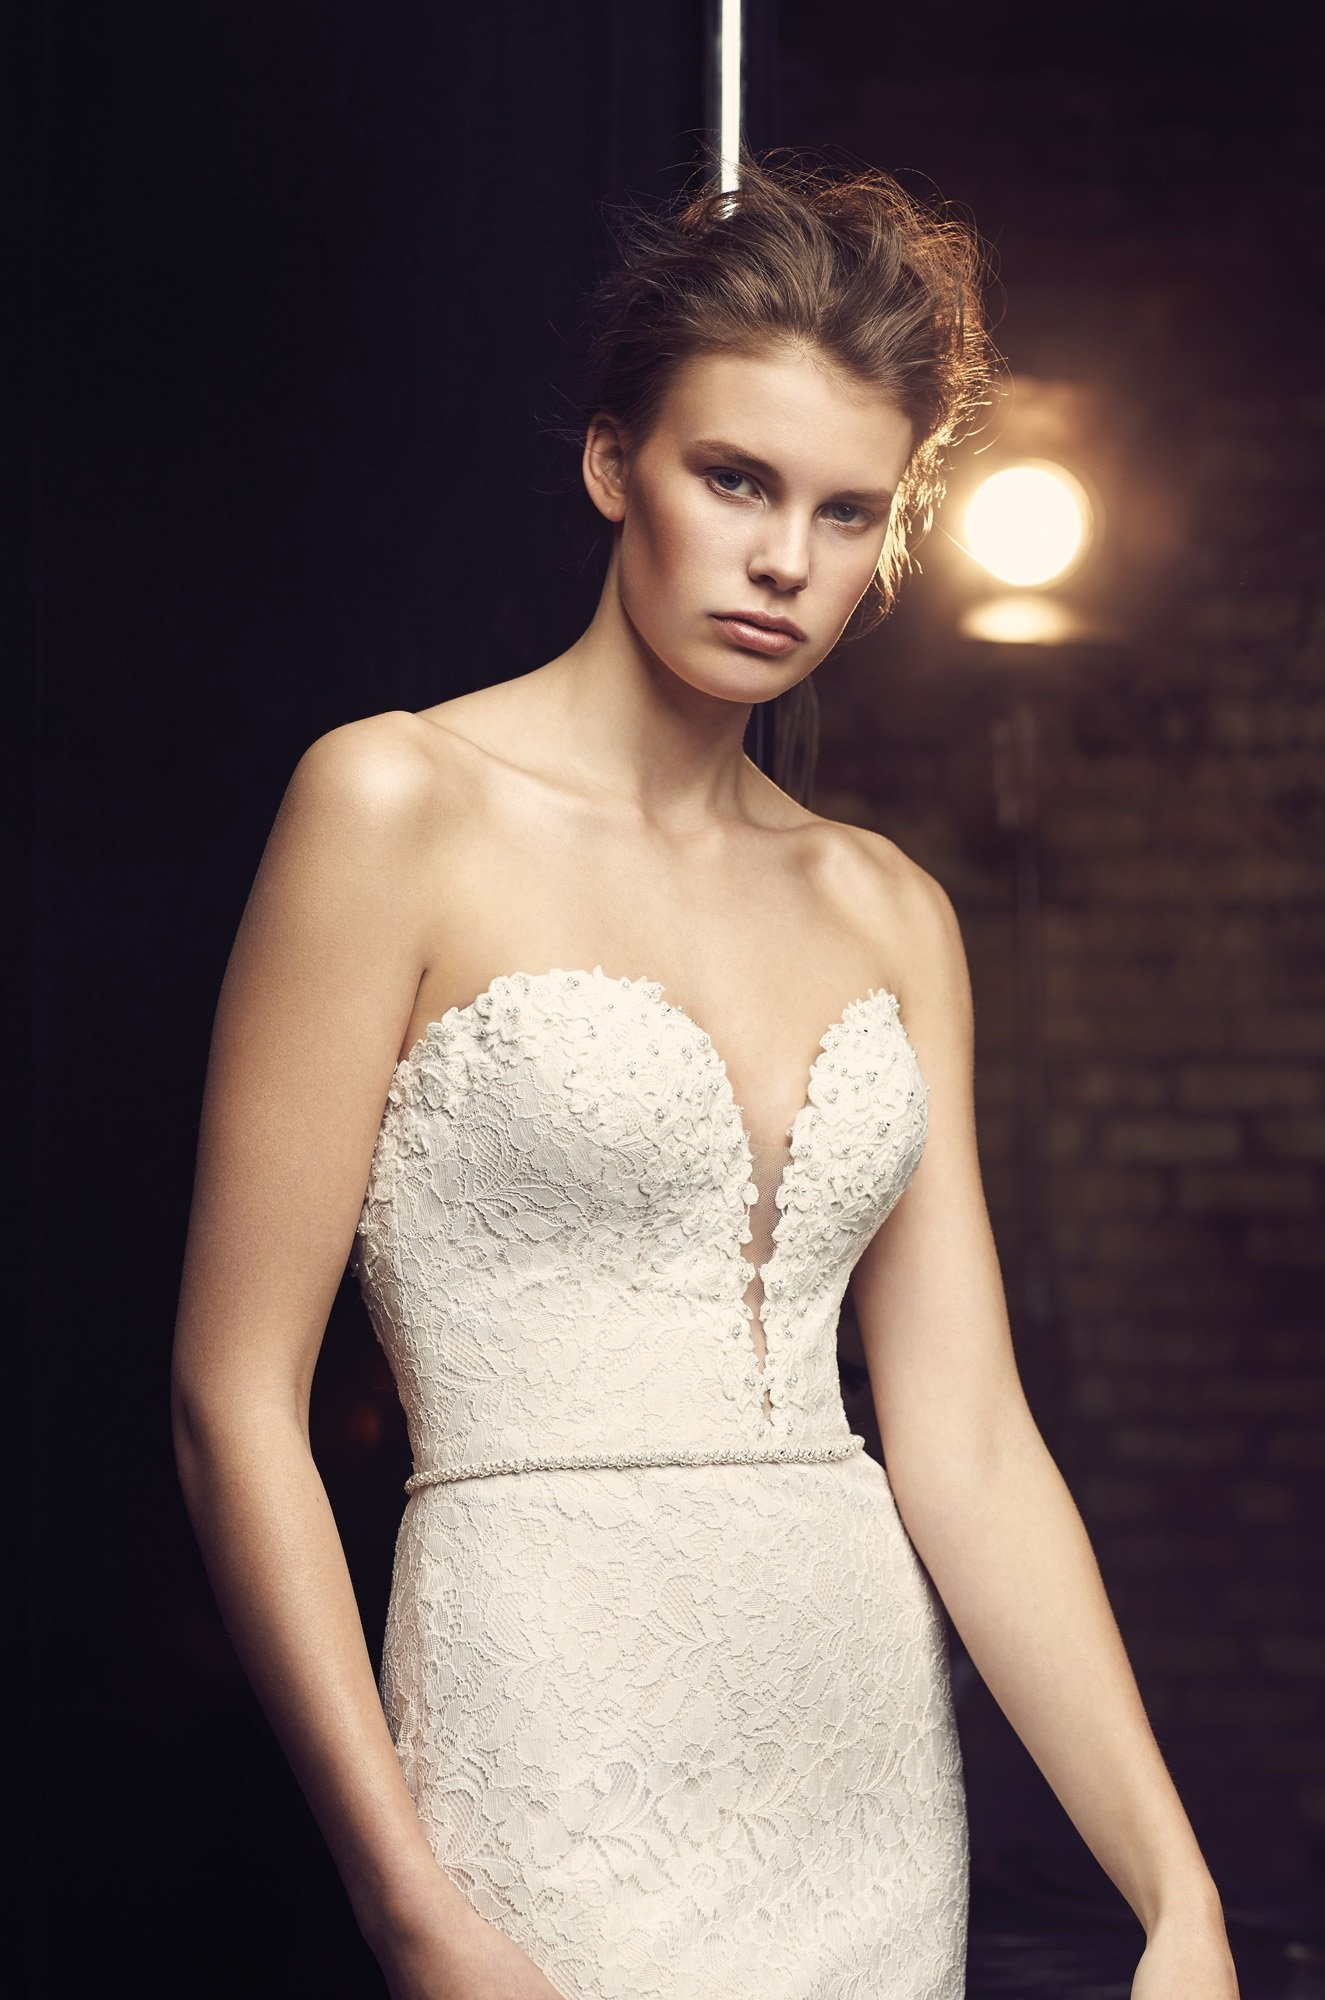 Plunging Neckline Wedding Dress - Style #2077 | Mikaella Bridal